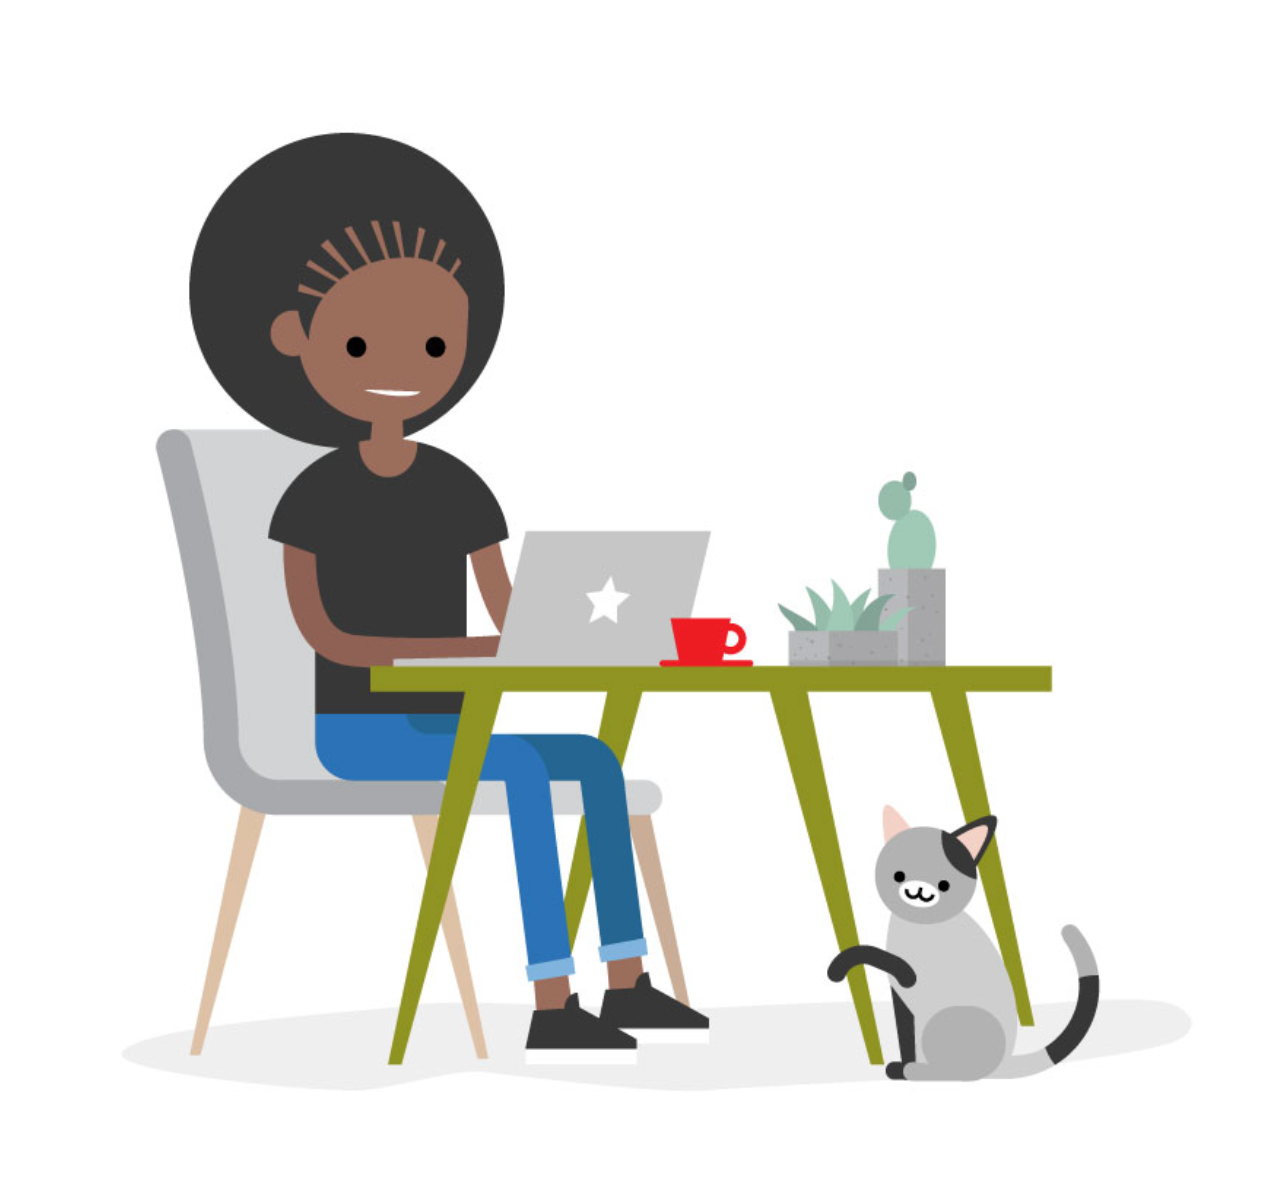 Cartoon image of someone sat at a computer